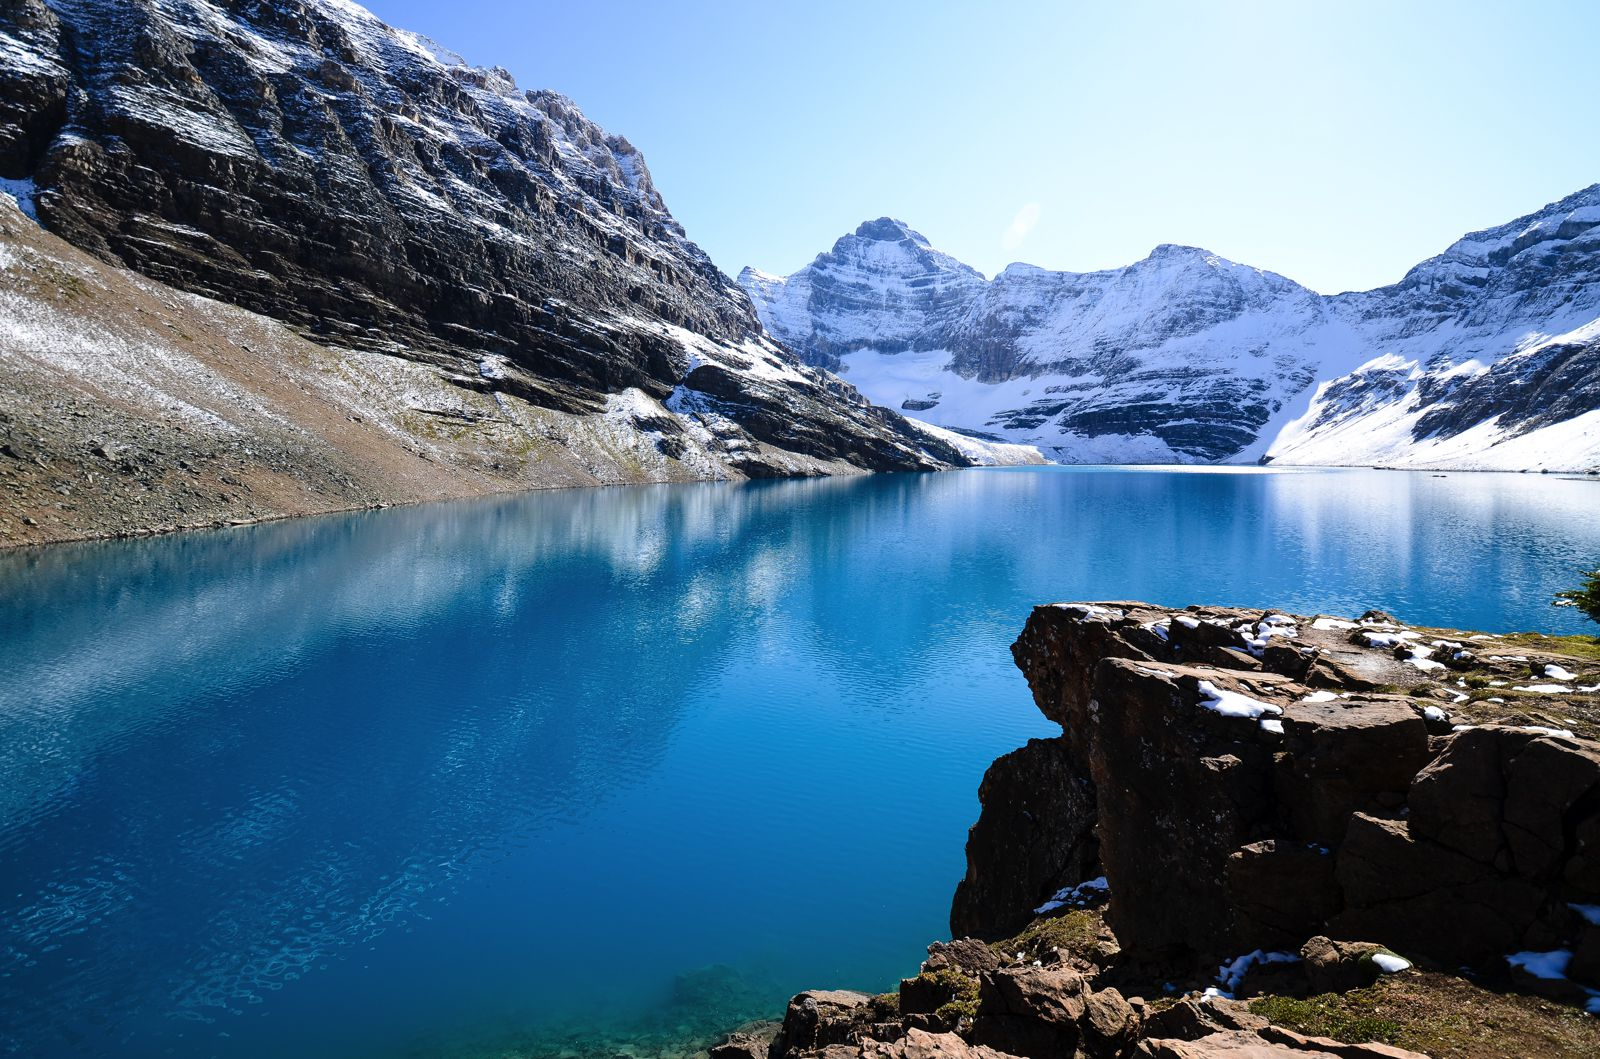 12 beautiful places to visit in british columbia, canada - hand